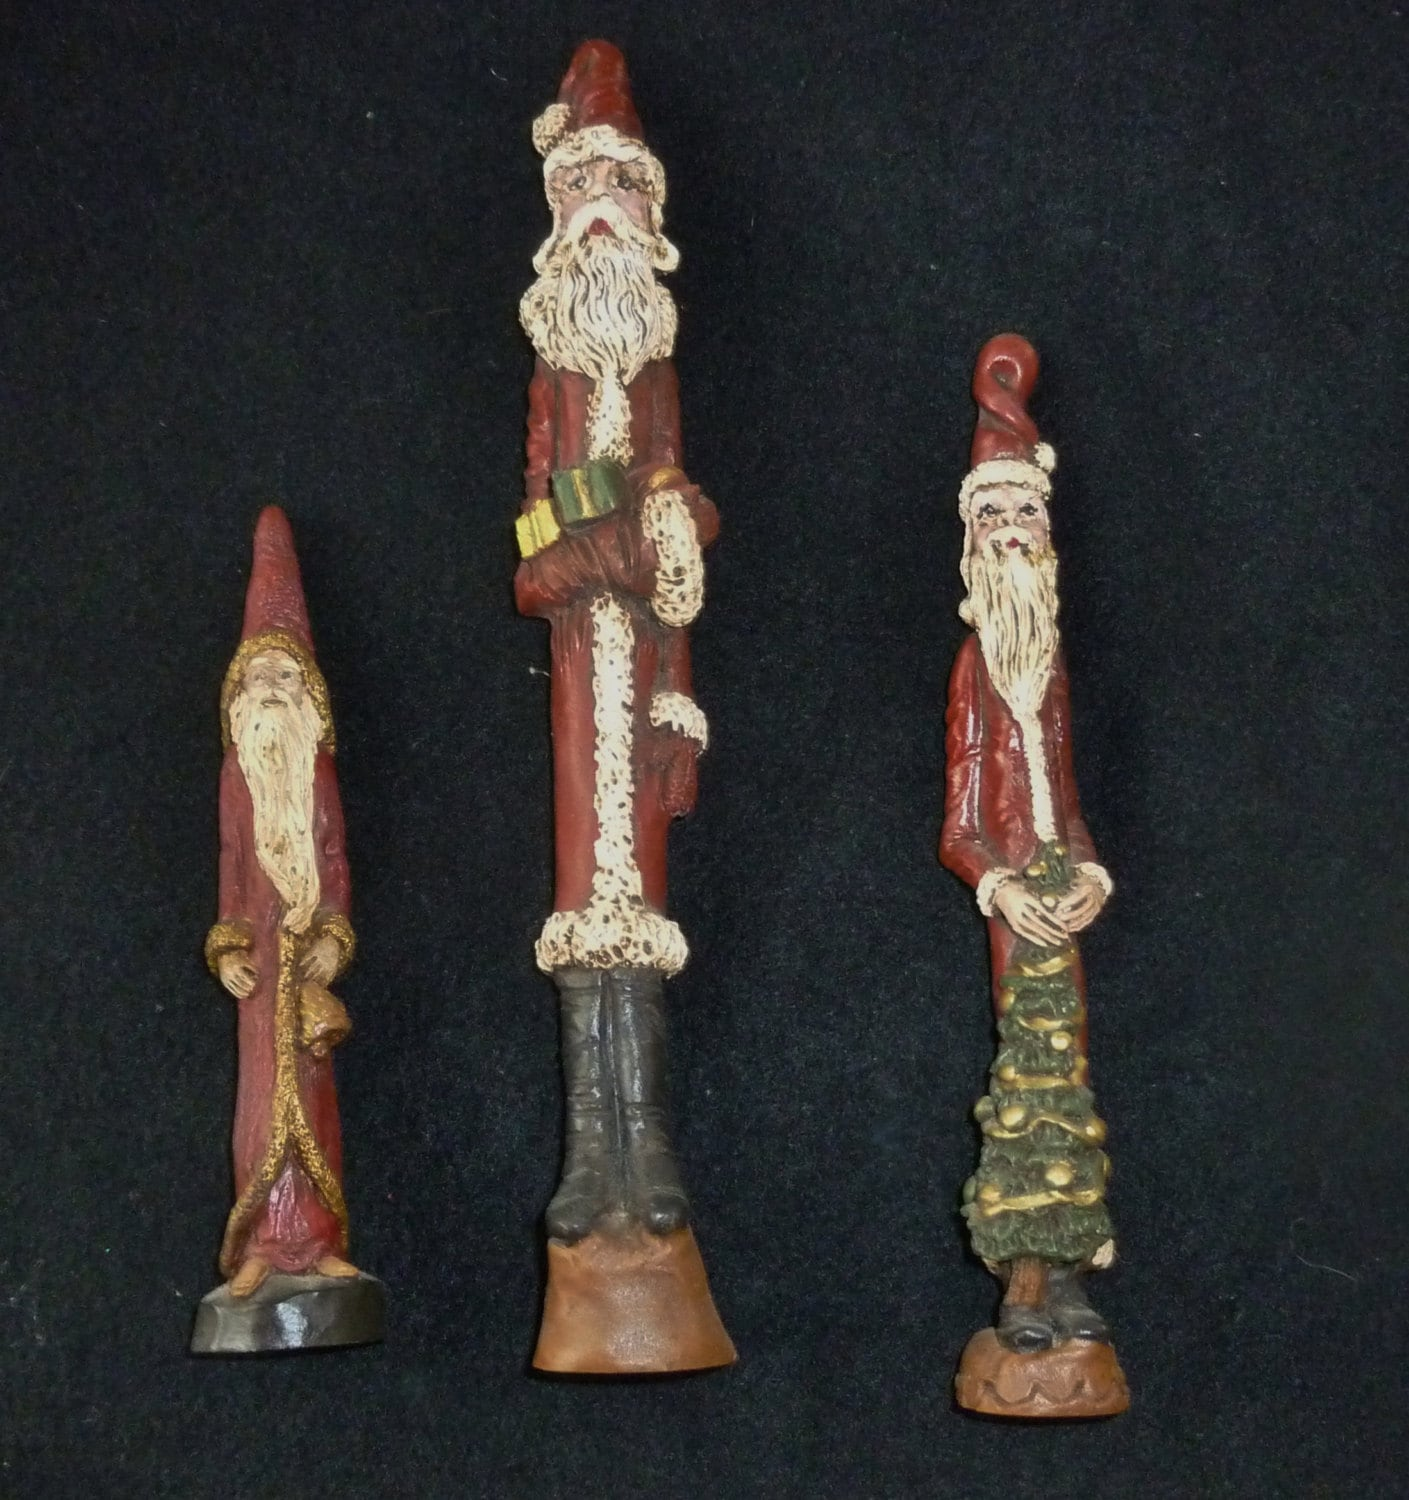 Vintage Santa Figurines Set Of 3 Folk Art Christmas Pencil